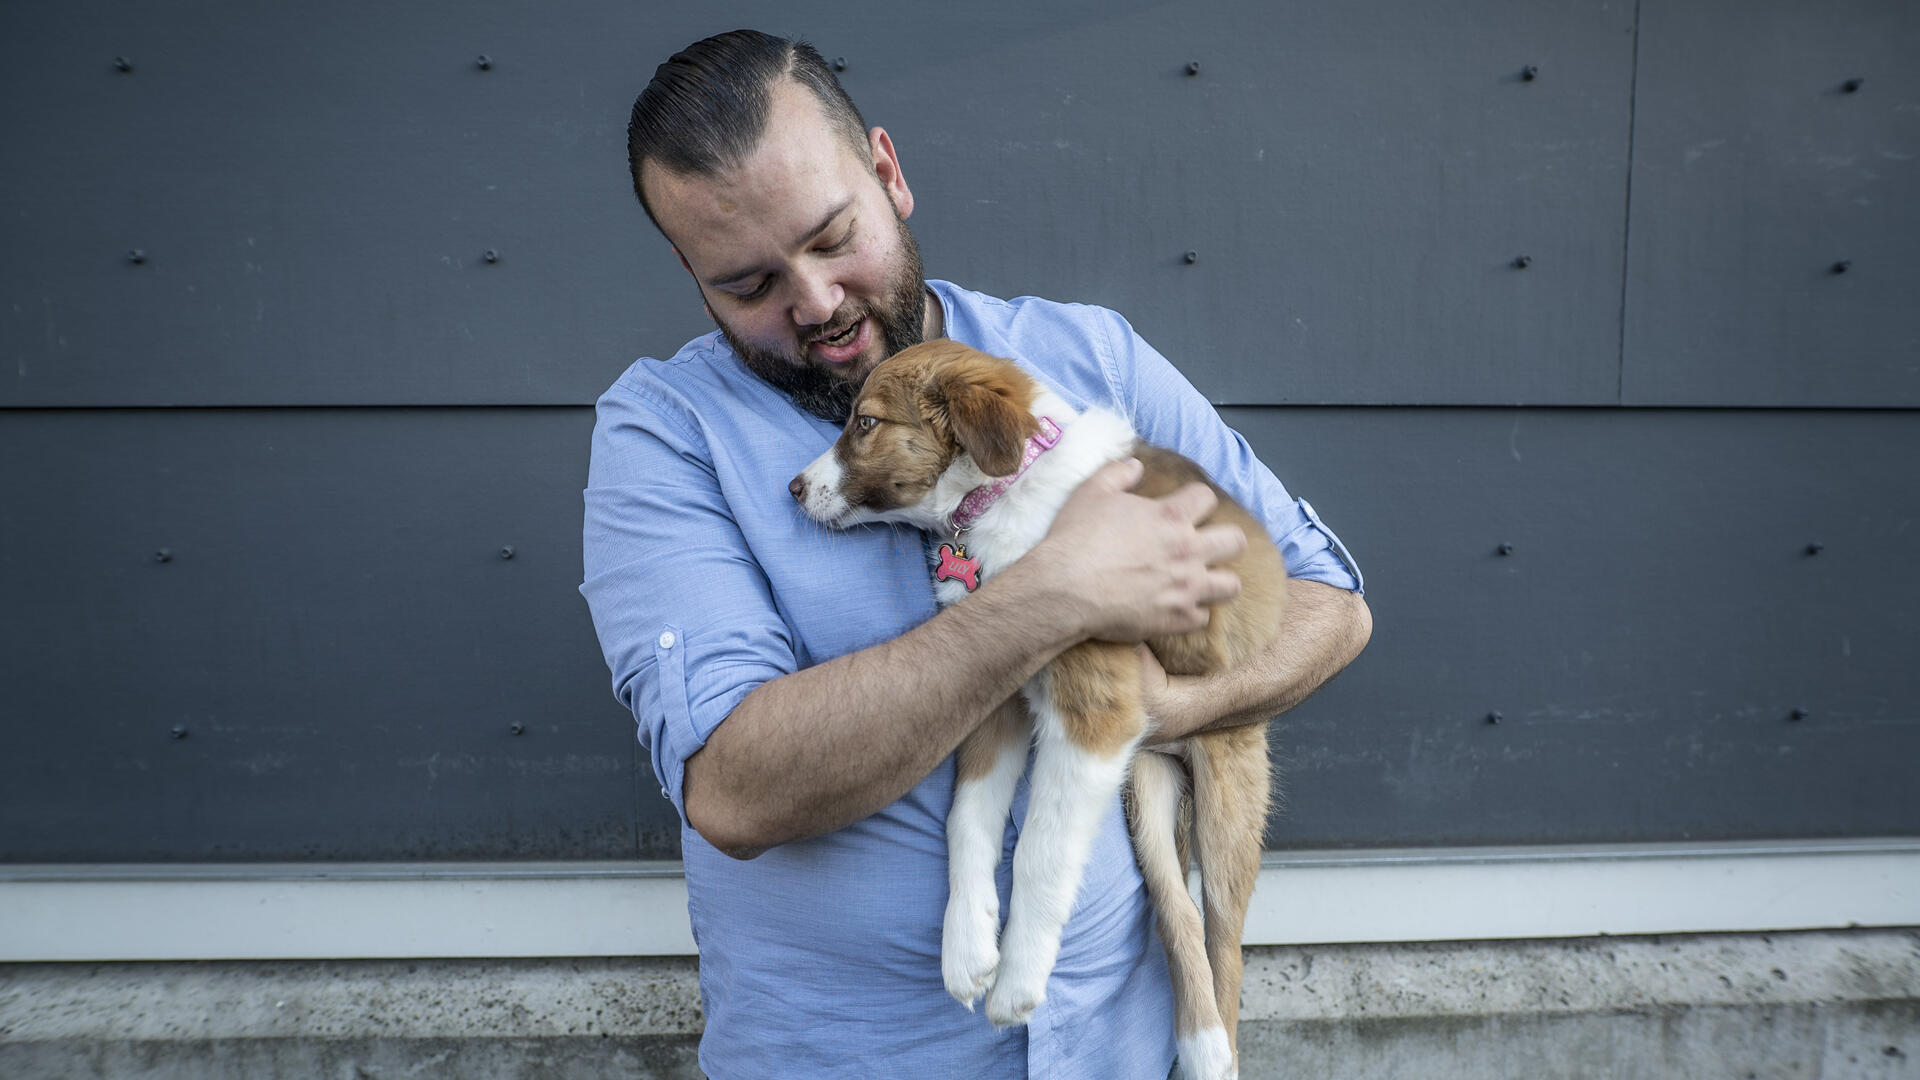 Suamhirs Piraino-Guzman with his dog, Lilly, outside his home in Seattle